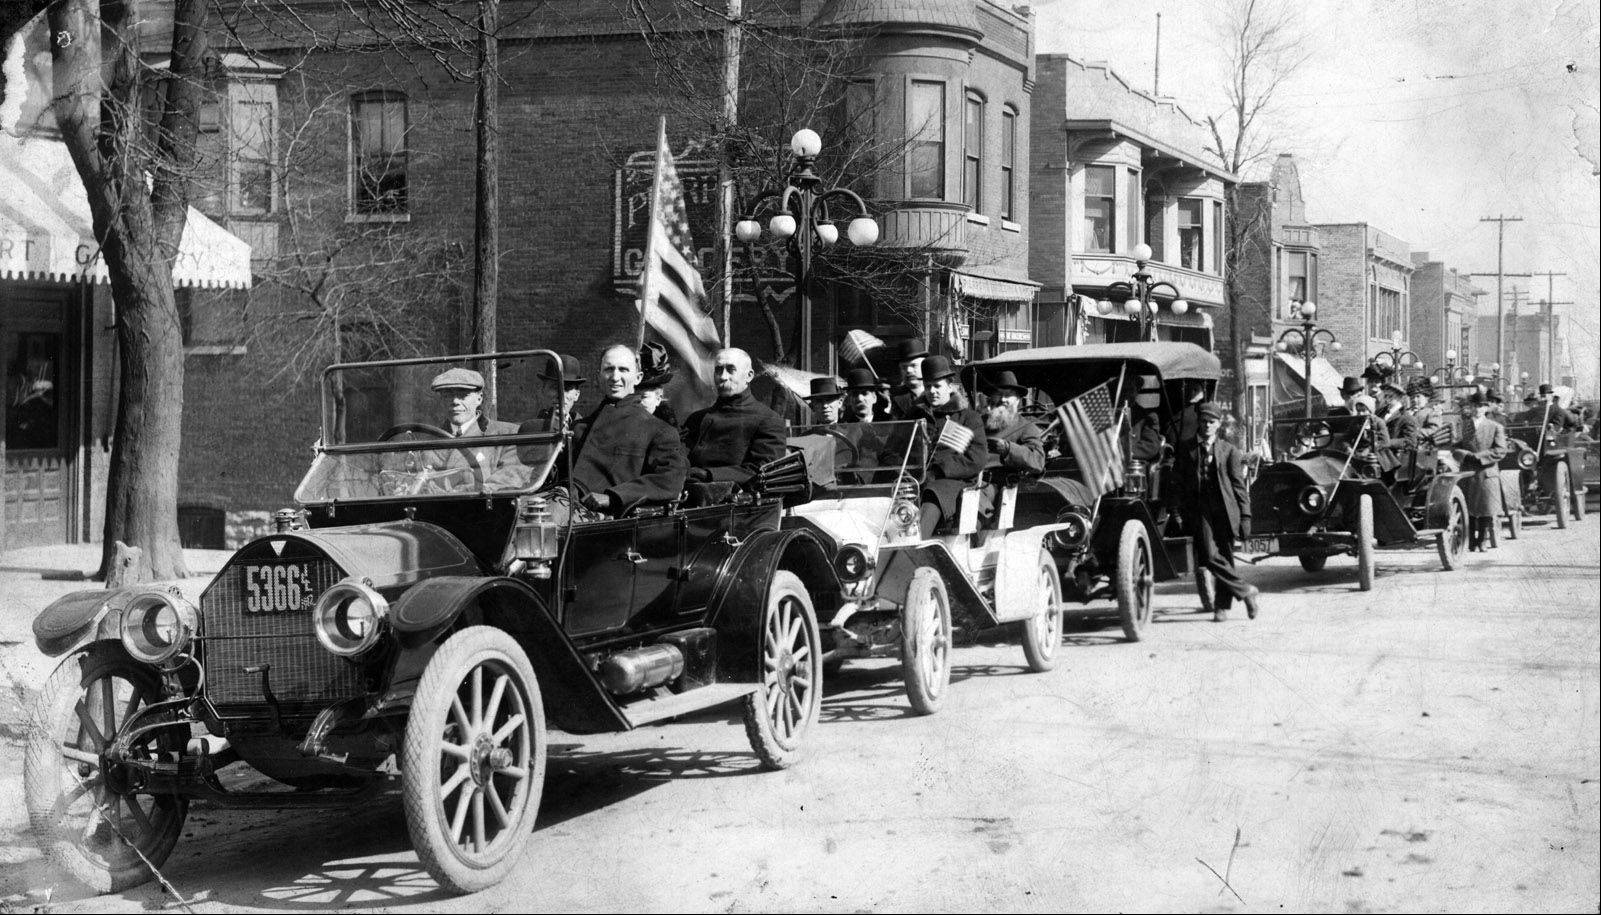 President Orrin Roe Jenks leads the Aurora College parade from the Aurora train station to the new campus on April 3, 1912. The institution was founded in Mendota in 1893 before moving to Aurora in 1912.